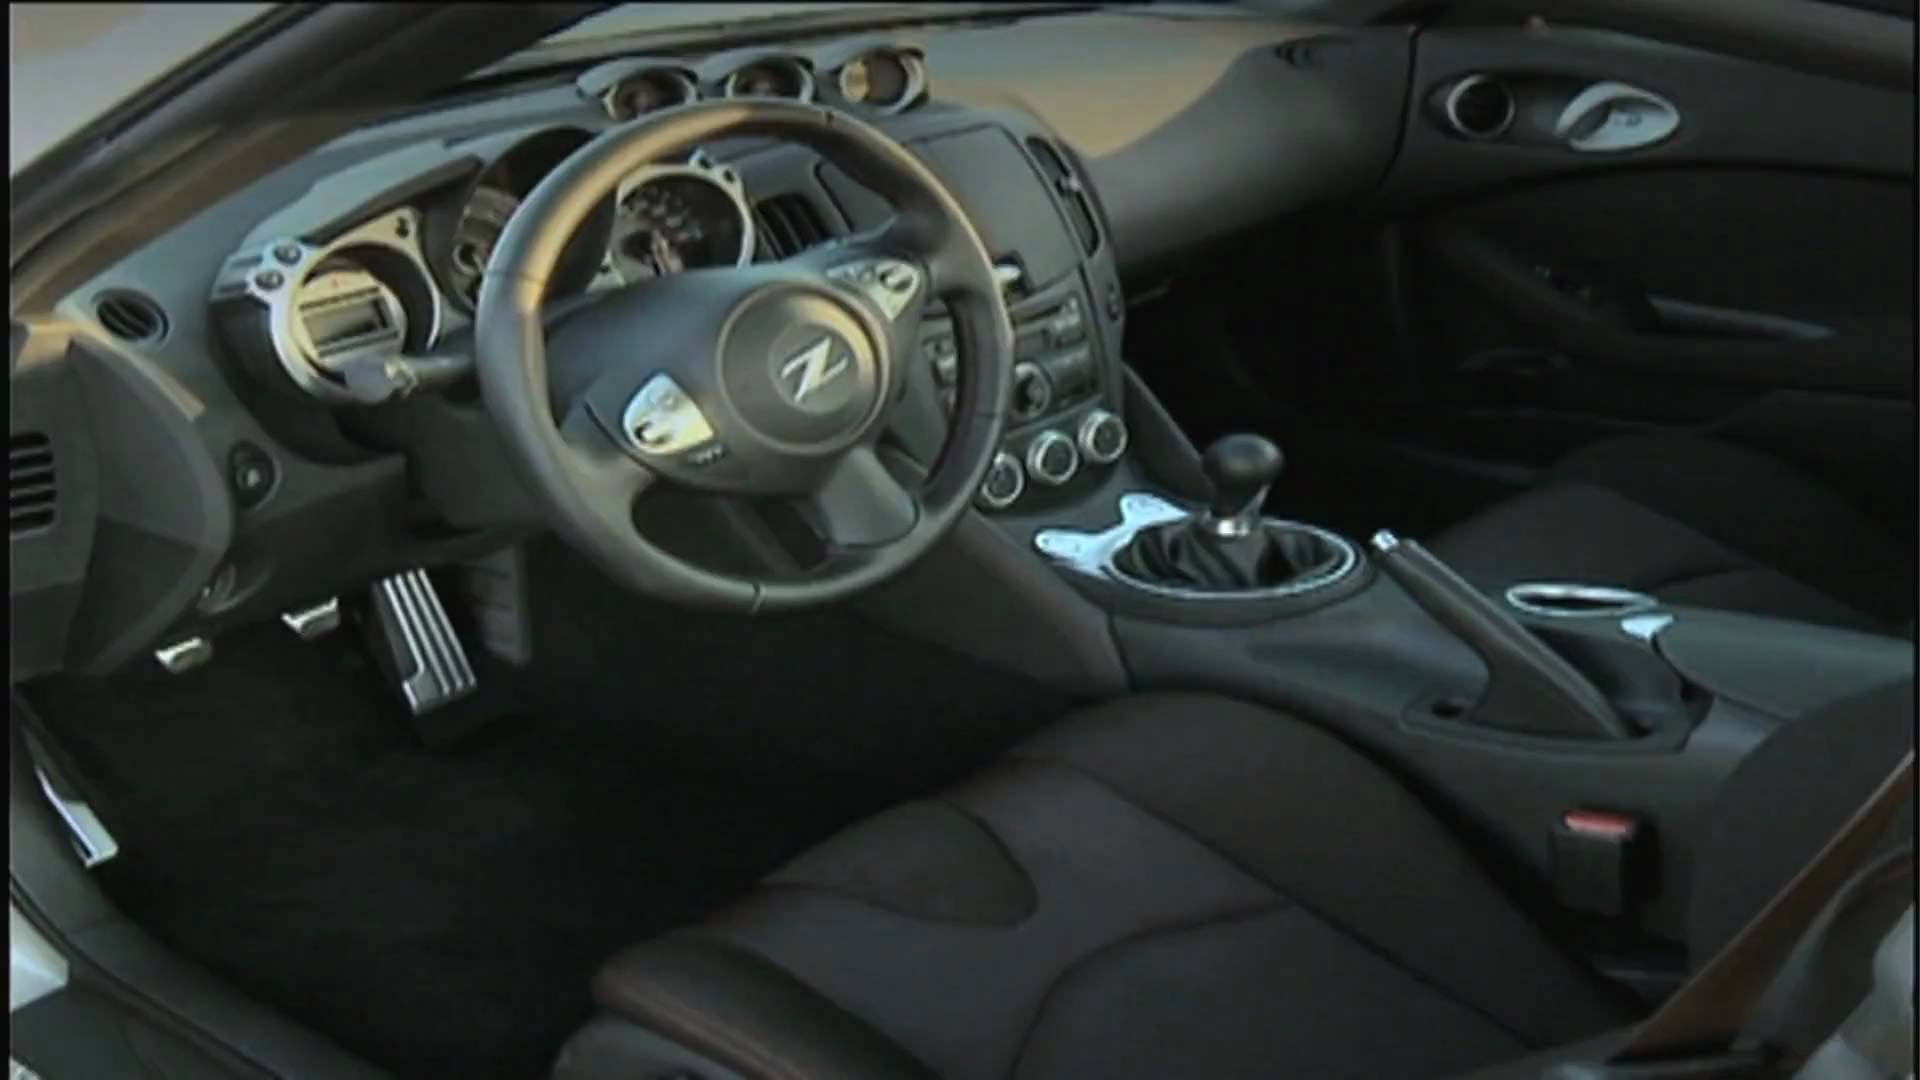 Nik MIles Tips on getting your car ready to safely drive after sitting KPTV Fox 12 | Our Auto Expert